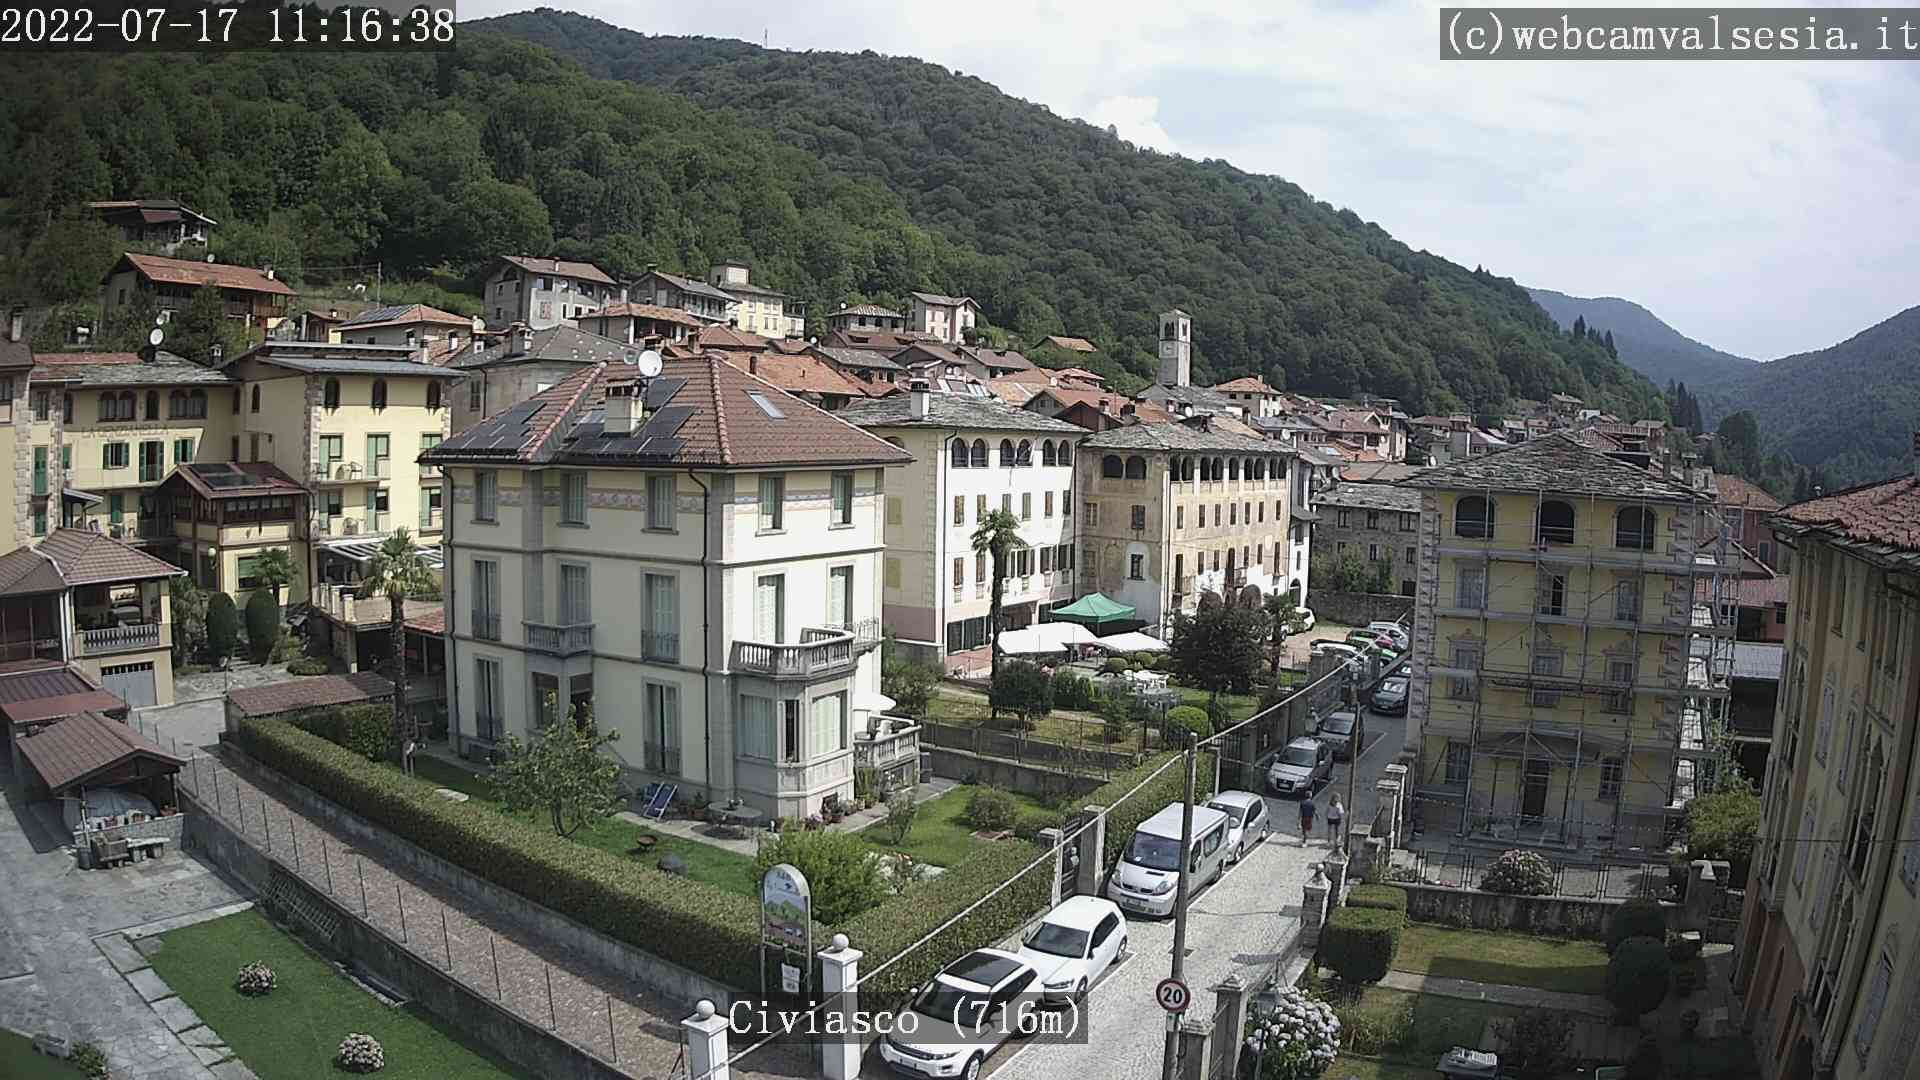 webcam valsesia Civiasco